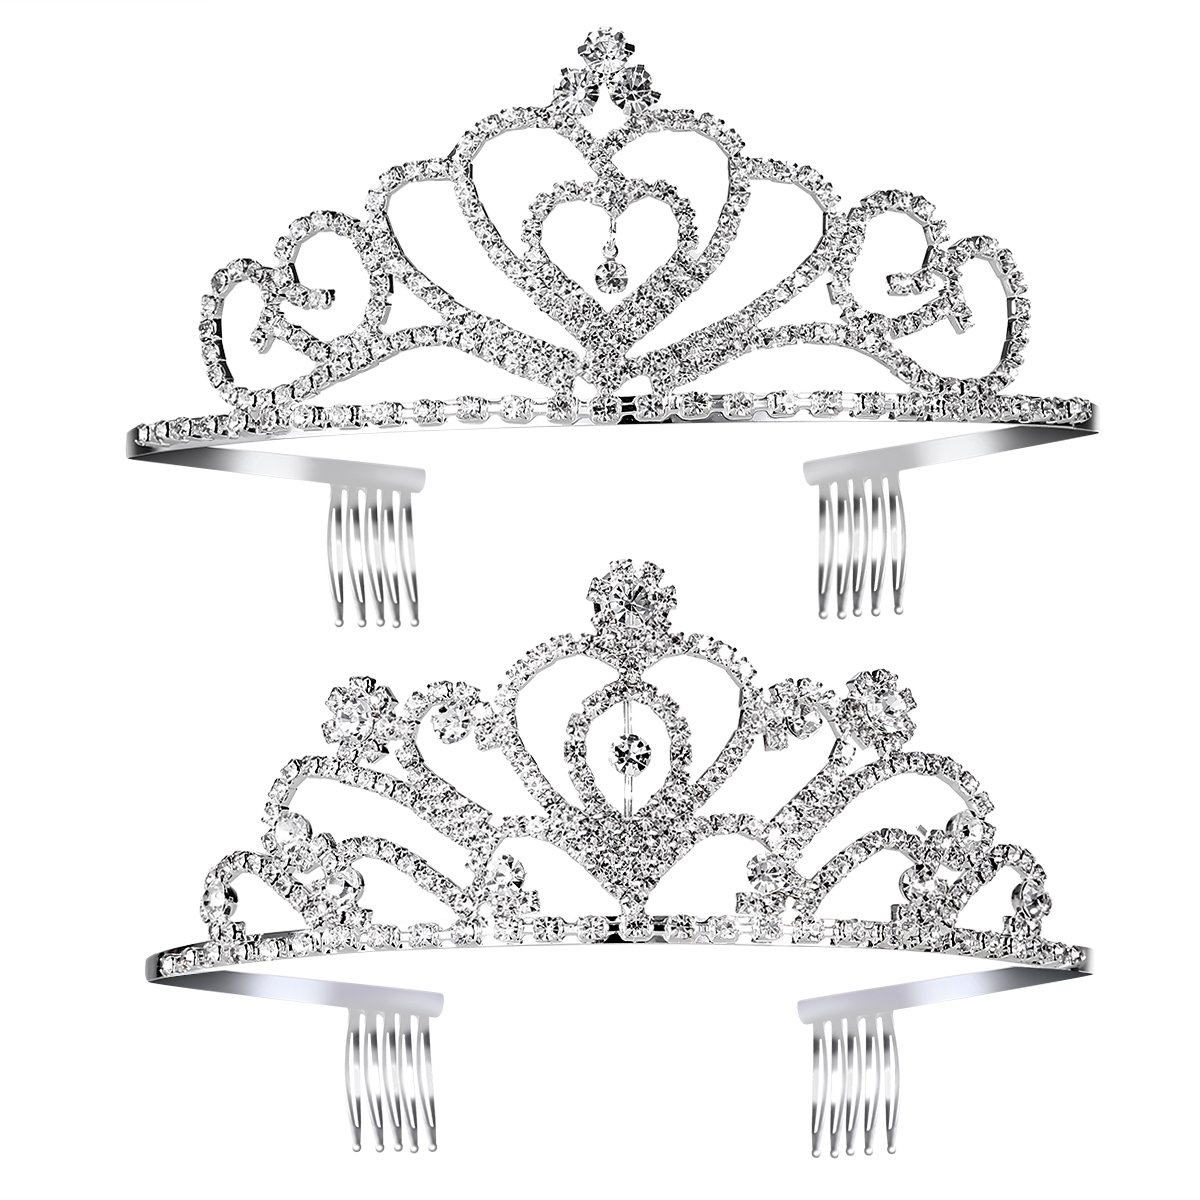 Pixnor Birthday Headband for Girls - 2 Styles Crystal Princess Crown Tiara Headband with Comb for Kids Girls